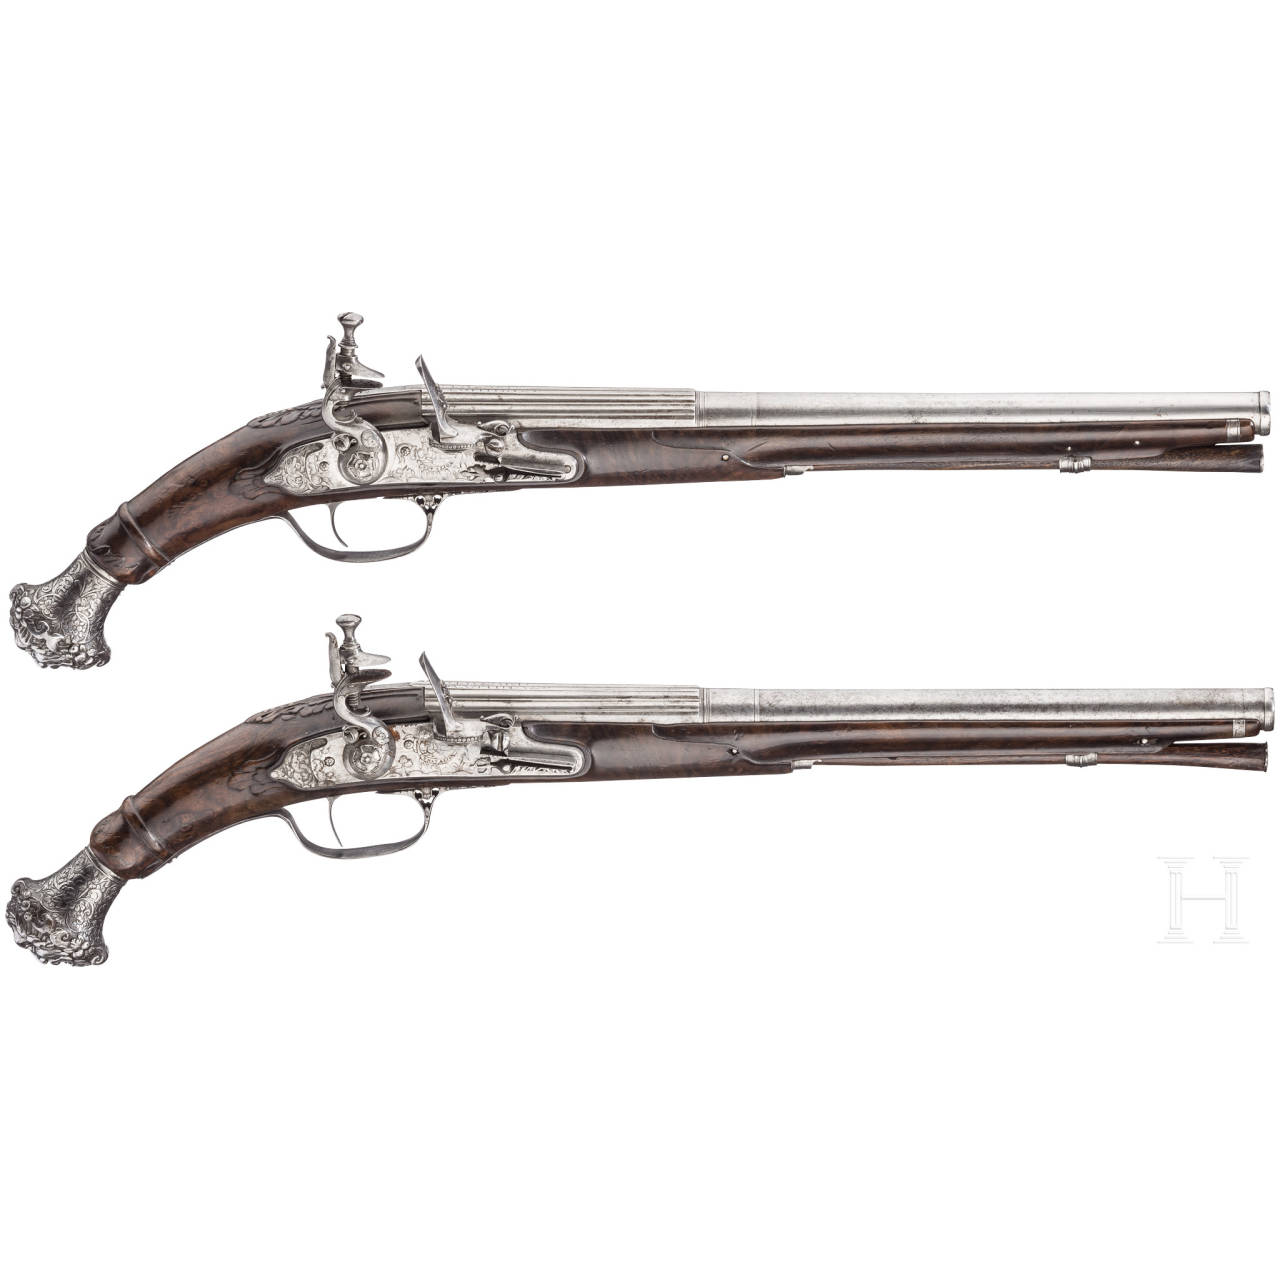 A pair of deluxe chiselled flintlock pistols, Cunet, Lyons, ca. 1660